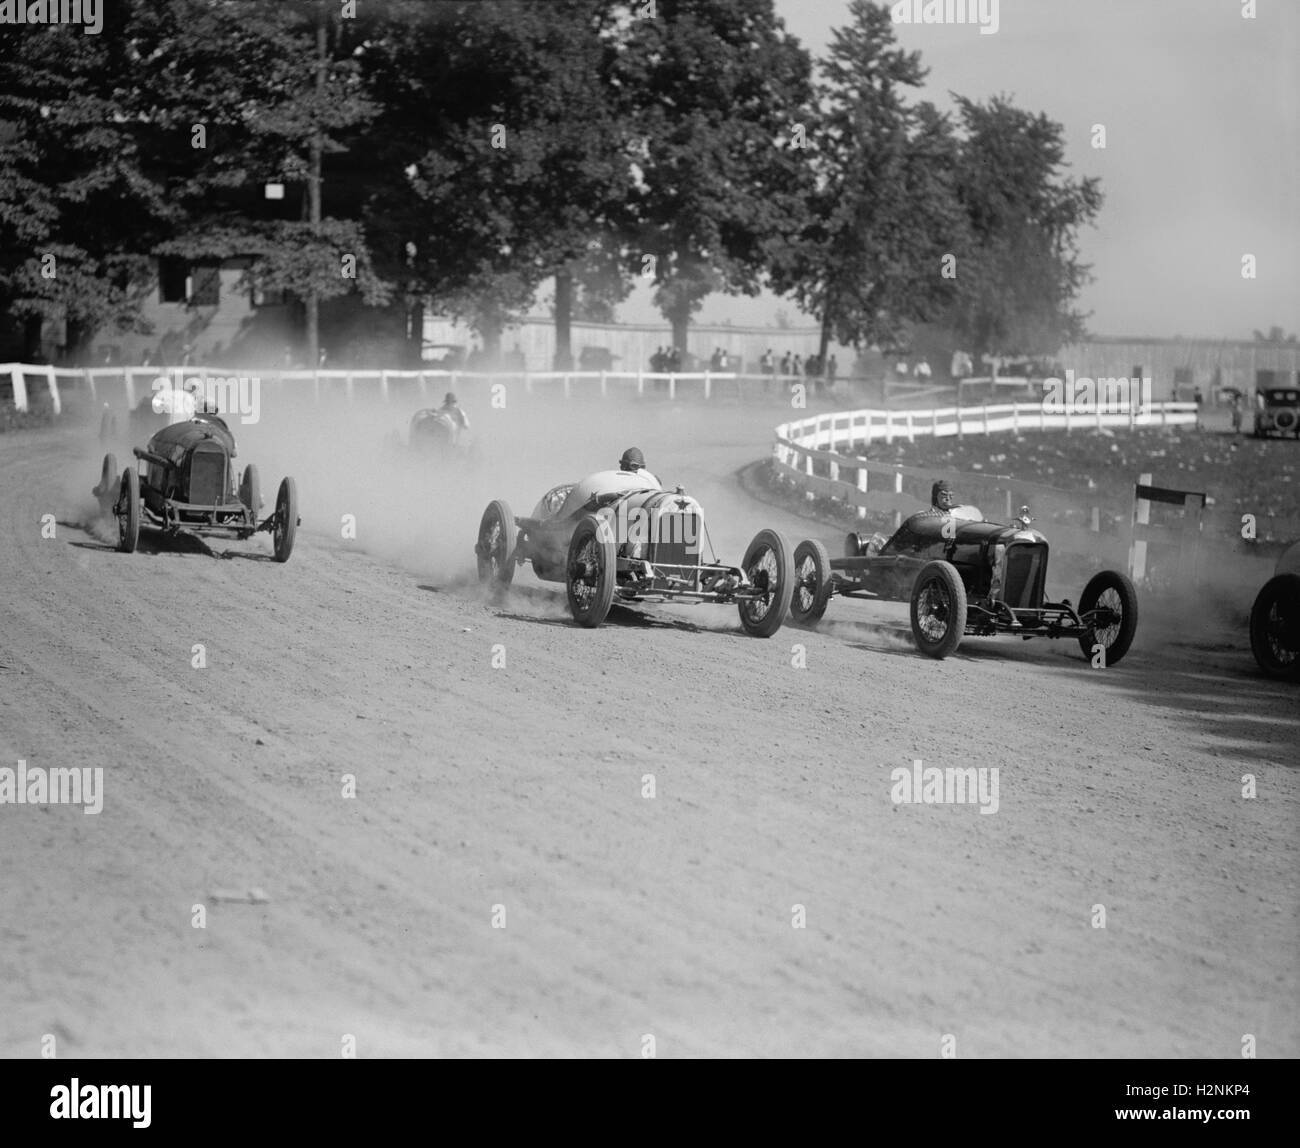 Auto Rennen, Rockville Messe, Rockville, Maryland, USA, National Photo Company, August 1923 Stockbild